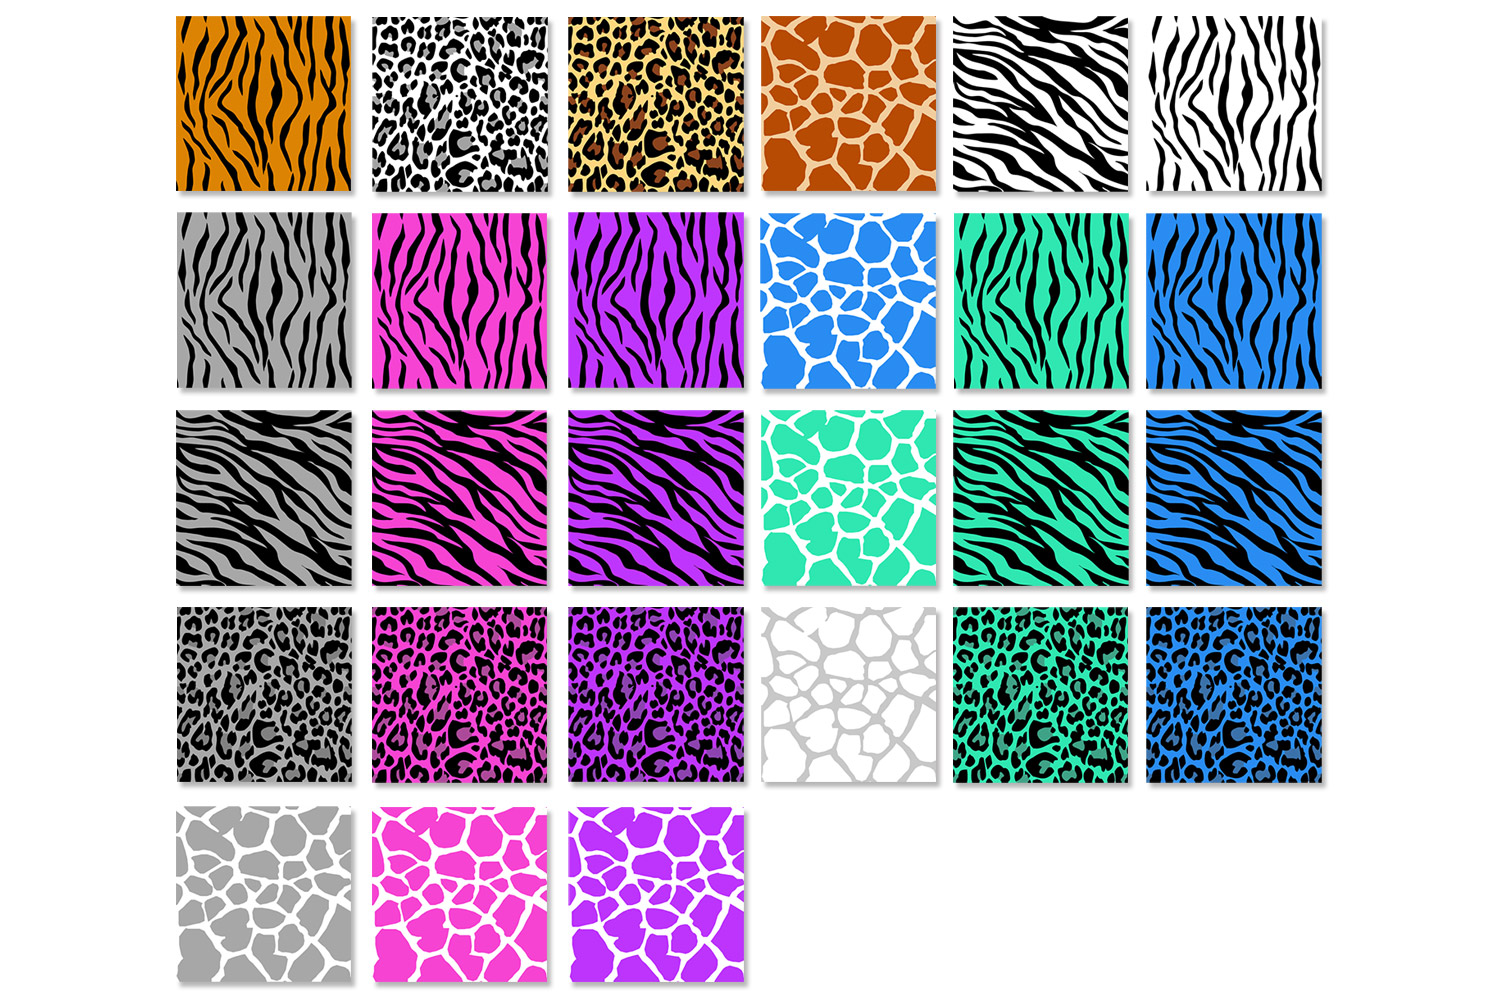 Animal Print Patterns - Zebra, Leopard, Tiger and Giraffe example image 2